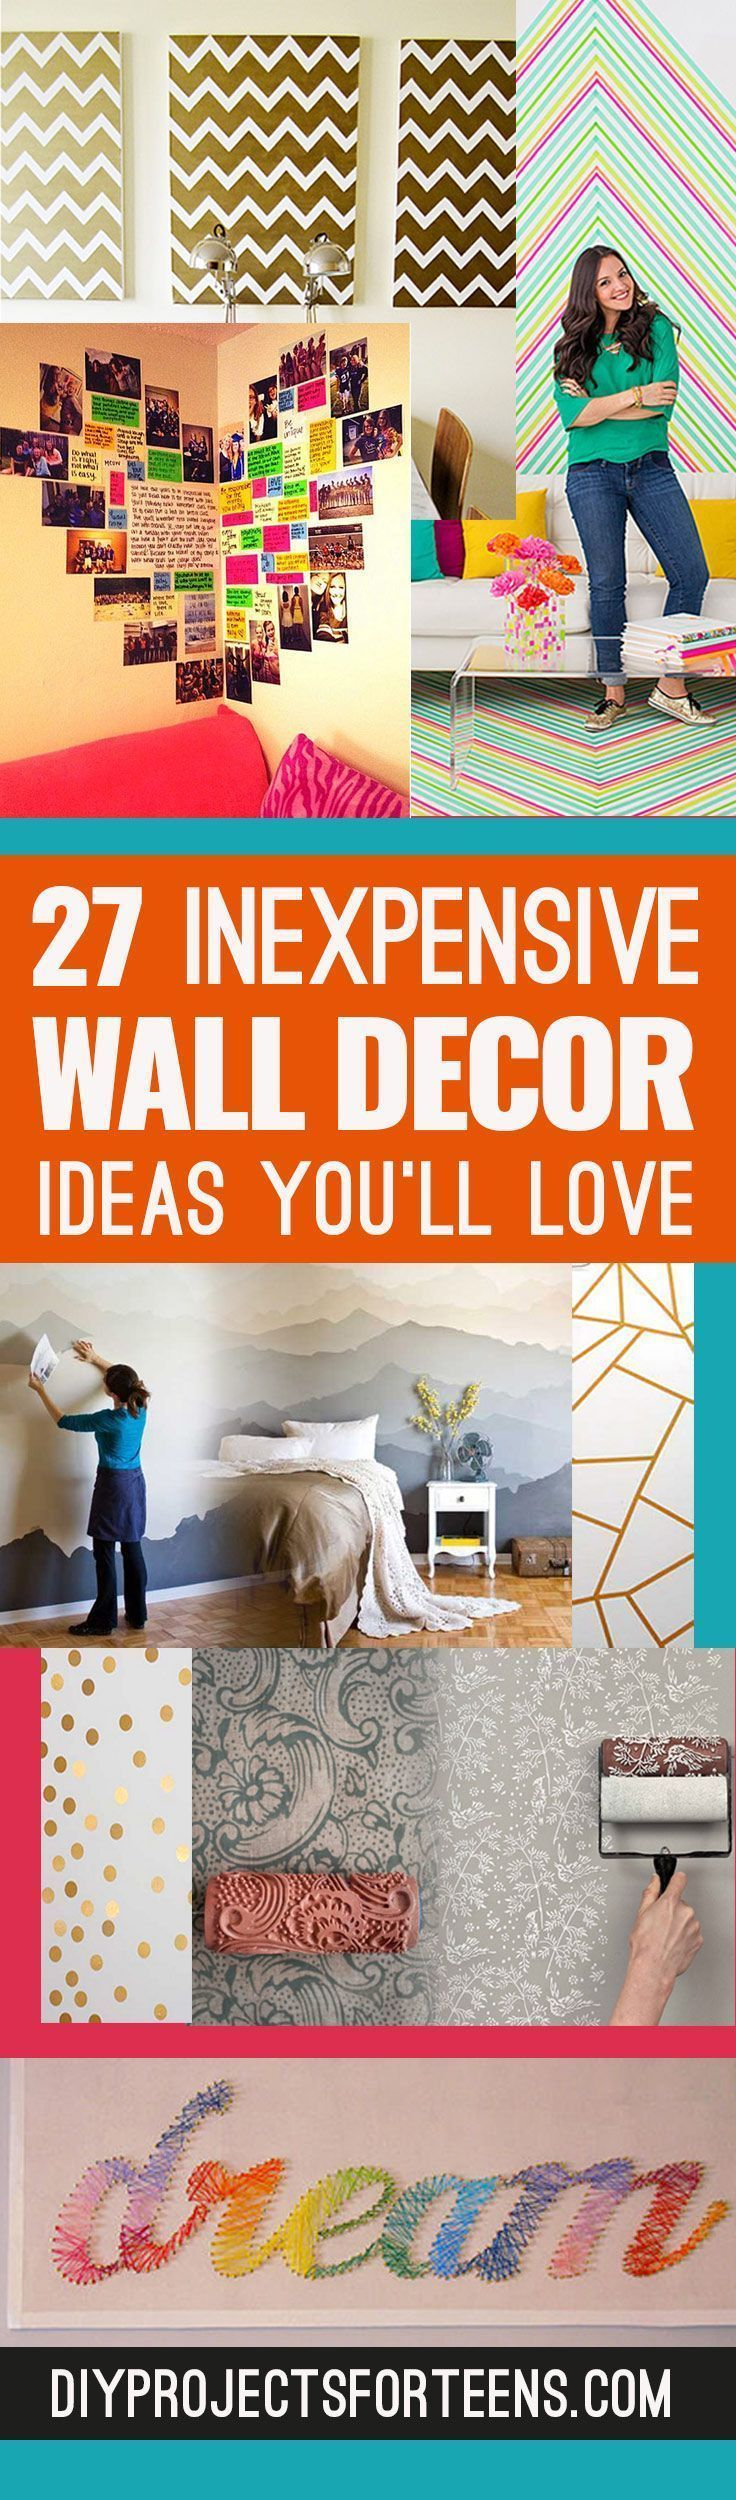 Cute DIY Wall Art Ideas You'll Love - Creative Room Decor on A Budget for Bedroom, Bath and Family. Teens, Dorms, Kids on a Budget. Popular Pins from Pinterest